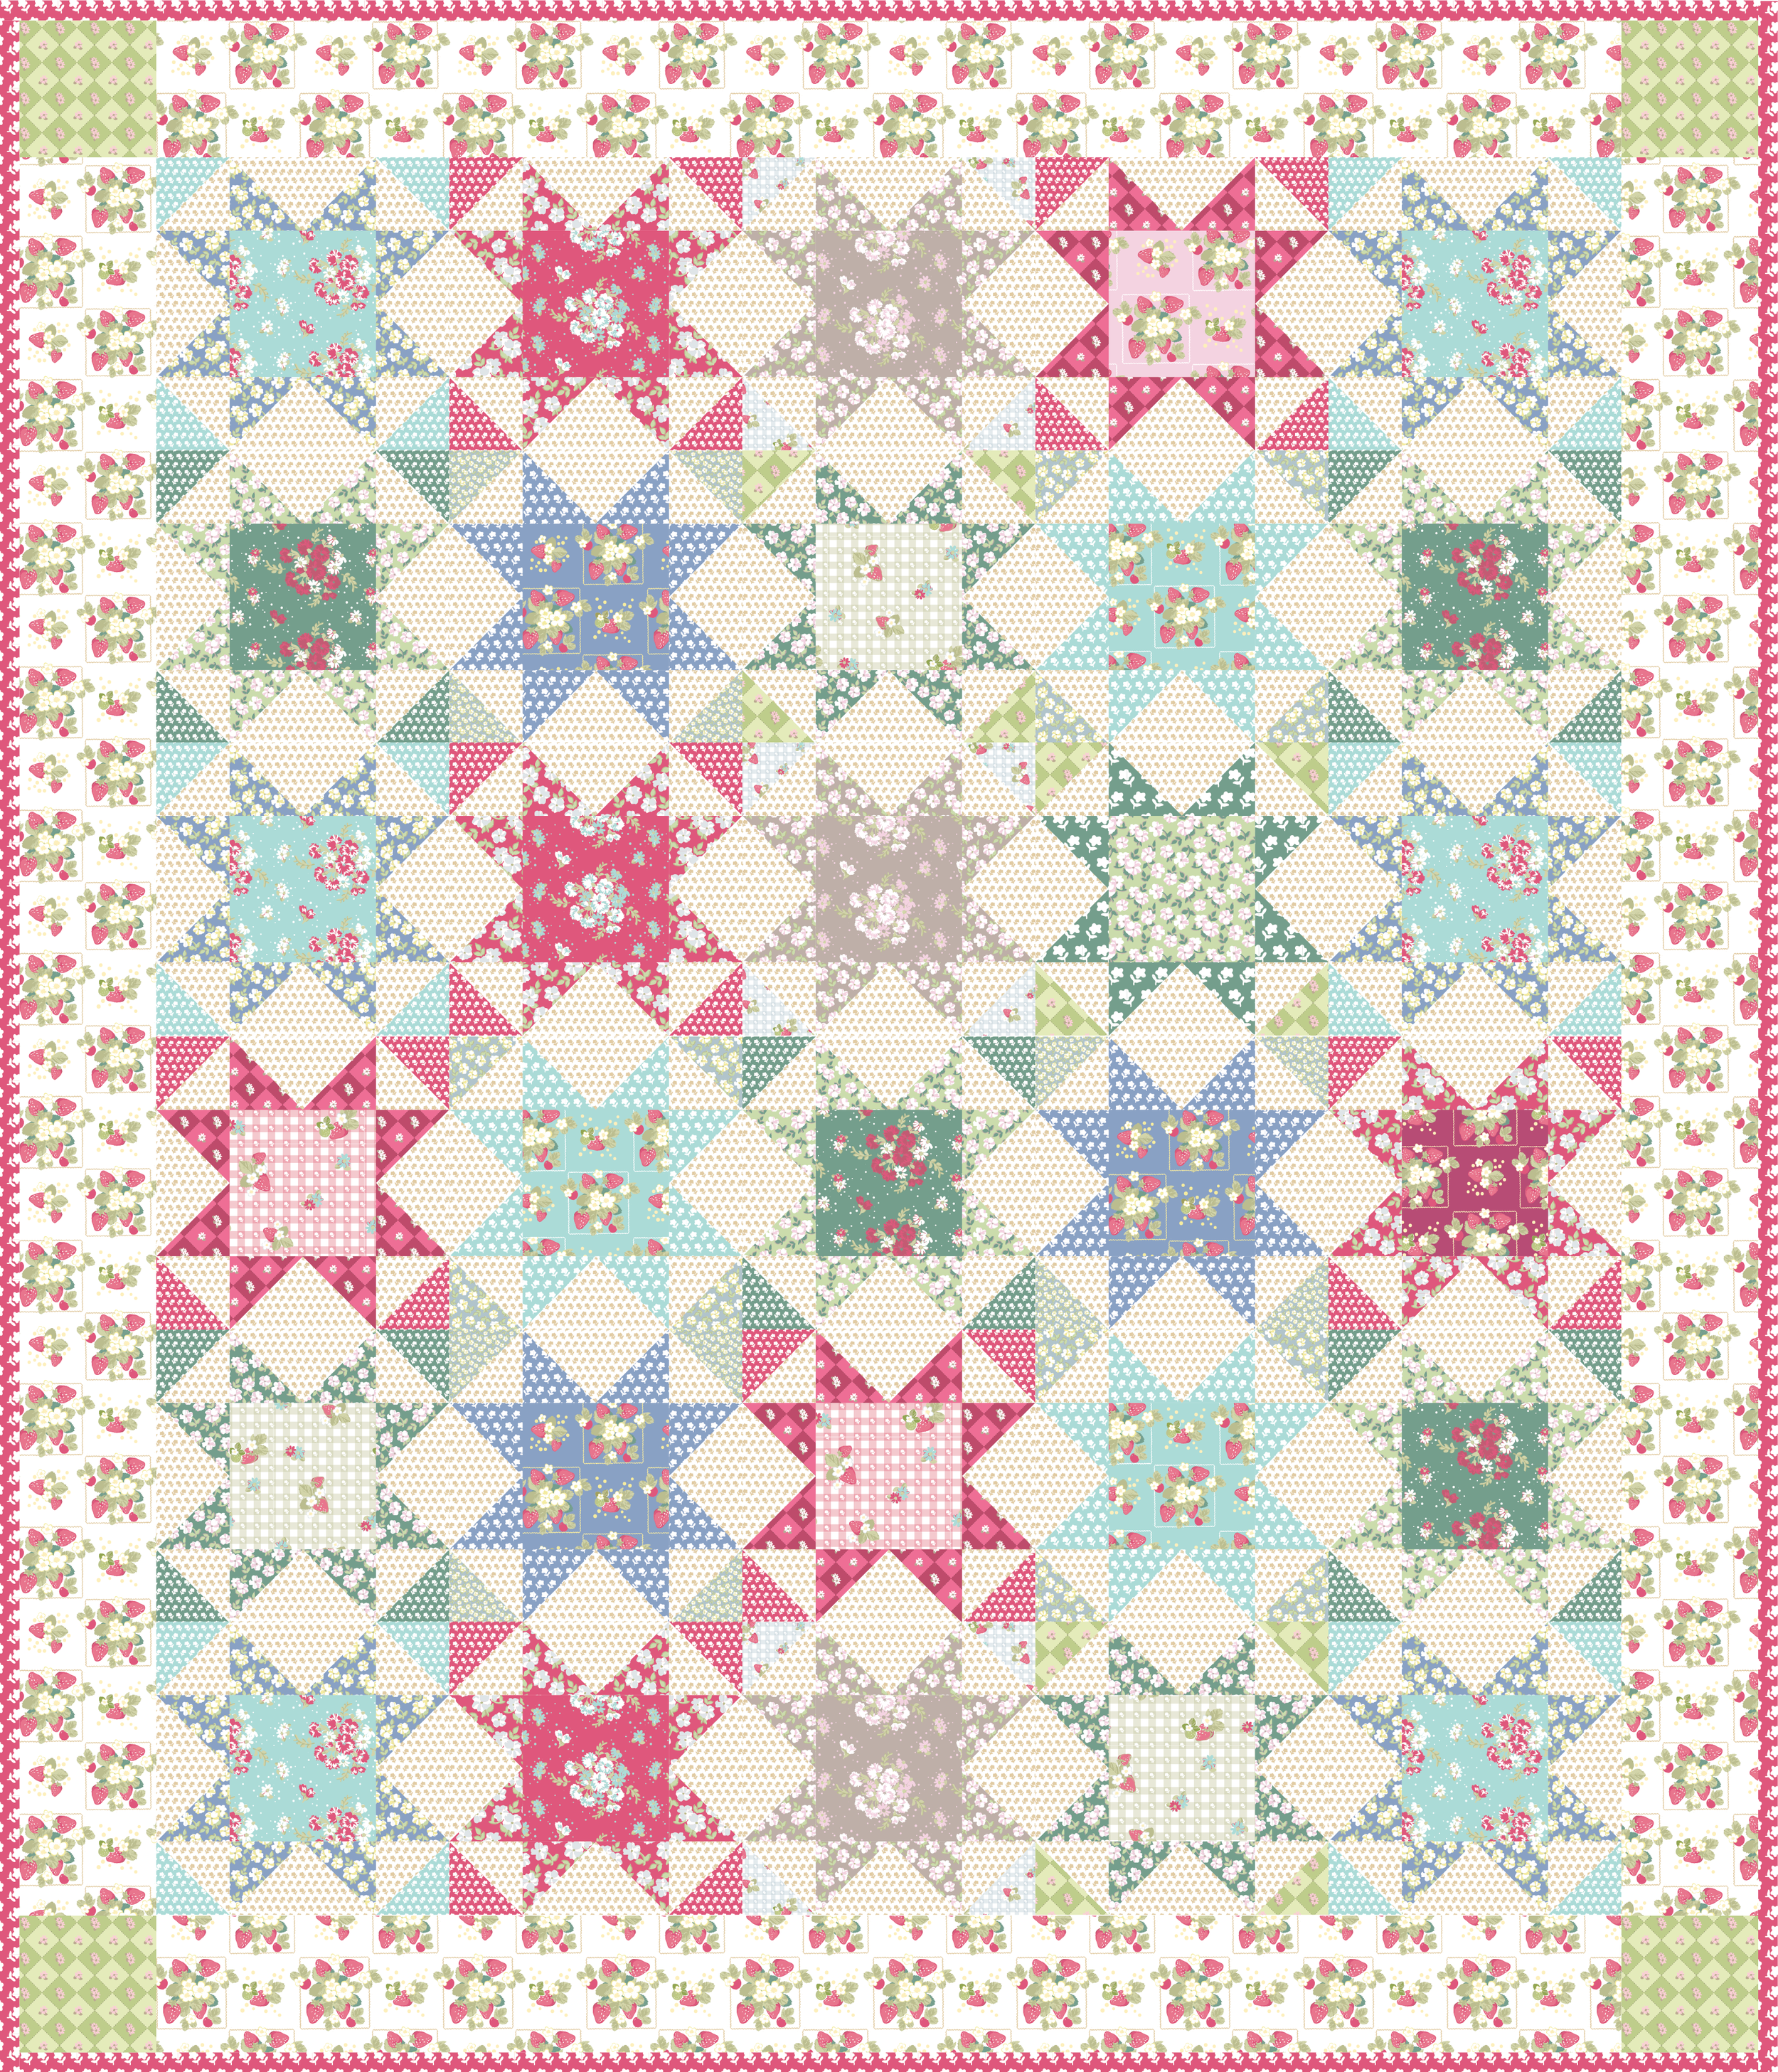 La Conner Stars by Jera Brandvig for Lecien Fabrics